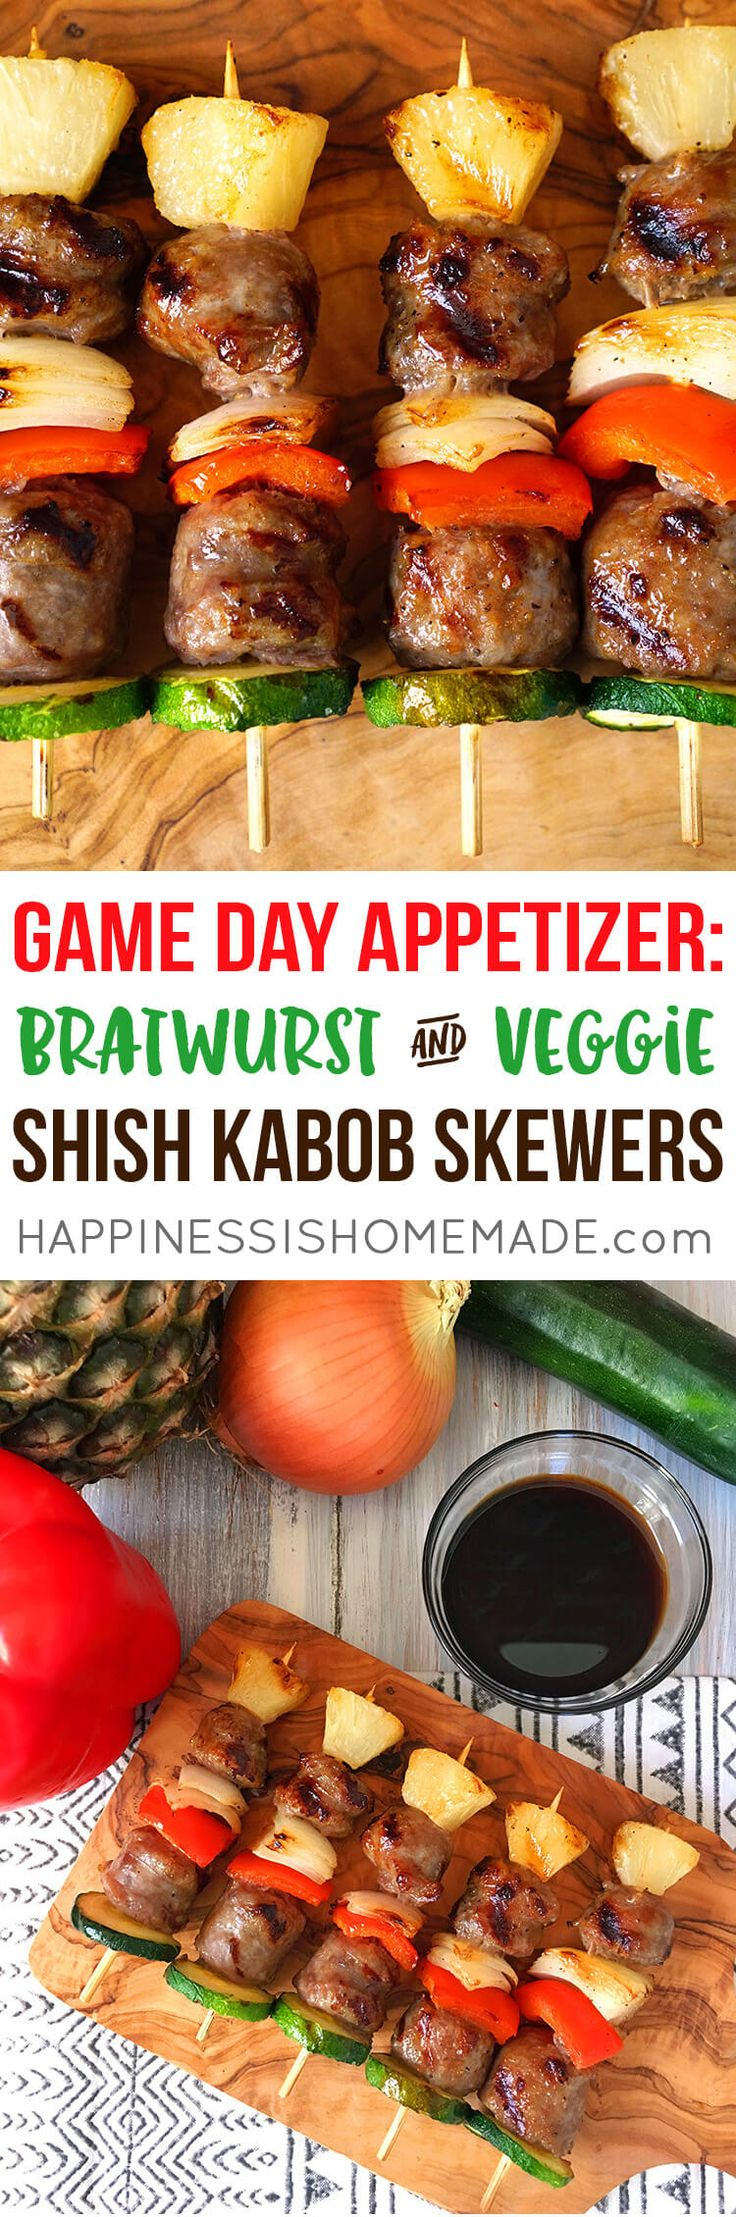 Grilled Bratwurst and Vegetable Shish Kabob Skewers are the perfect appetizer to munch on during The Big Game! Quick and easy to make! #ad @jvillesausage